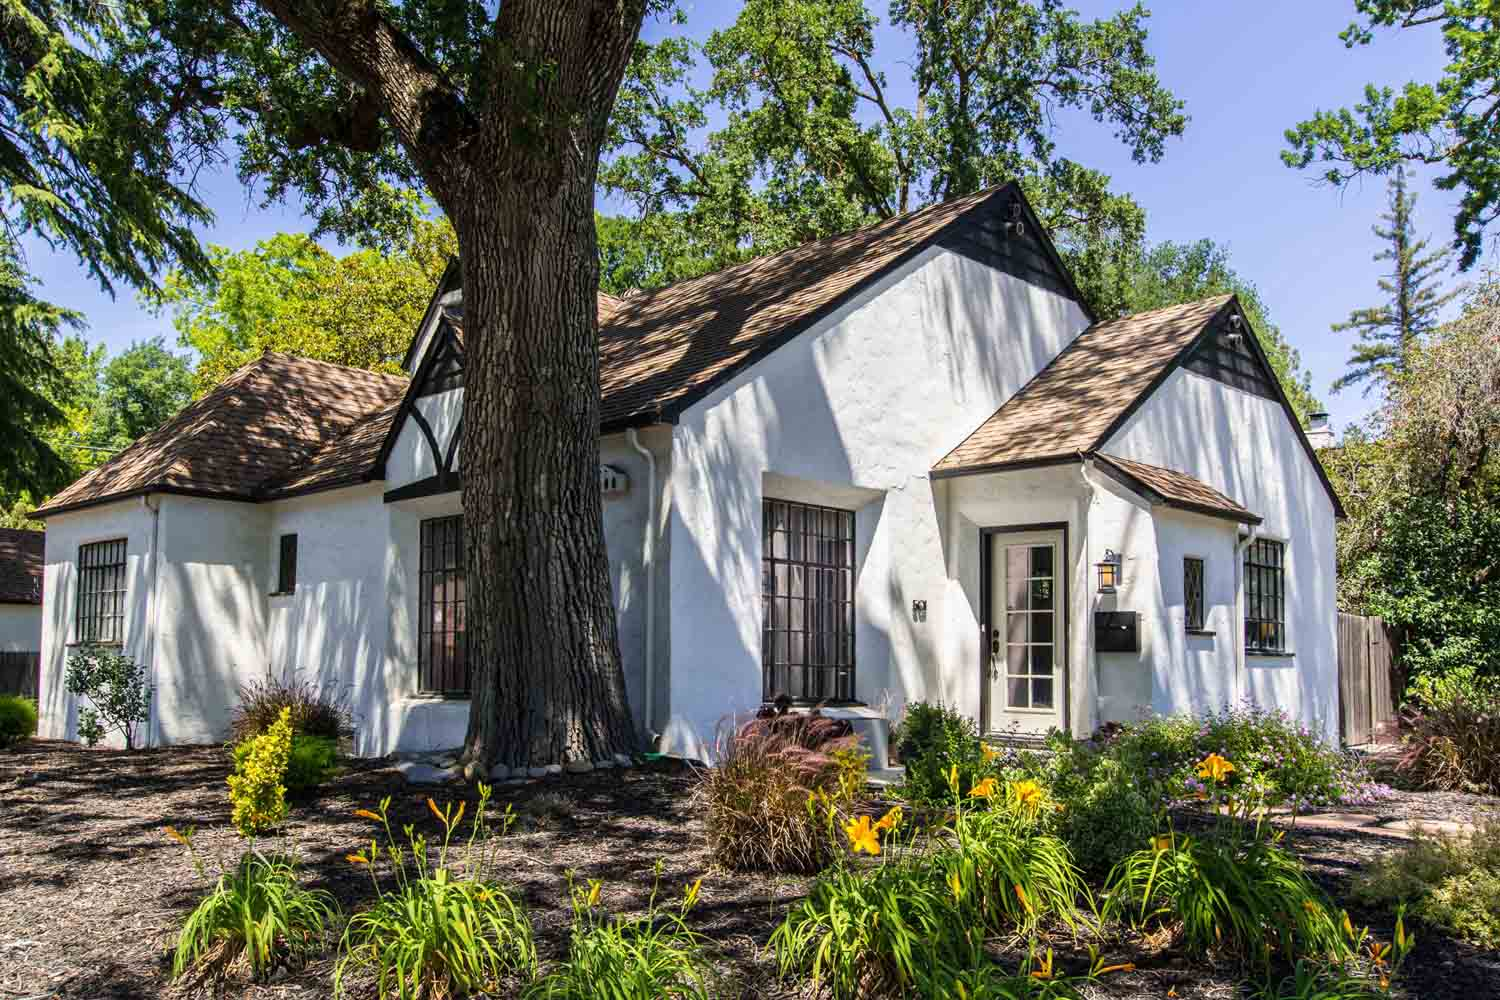 Sacramento Historic Home Tour in Woodlake